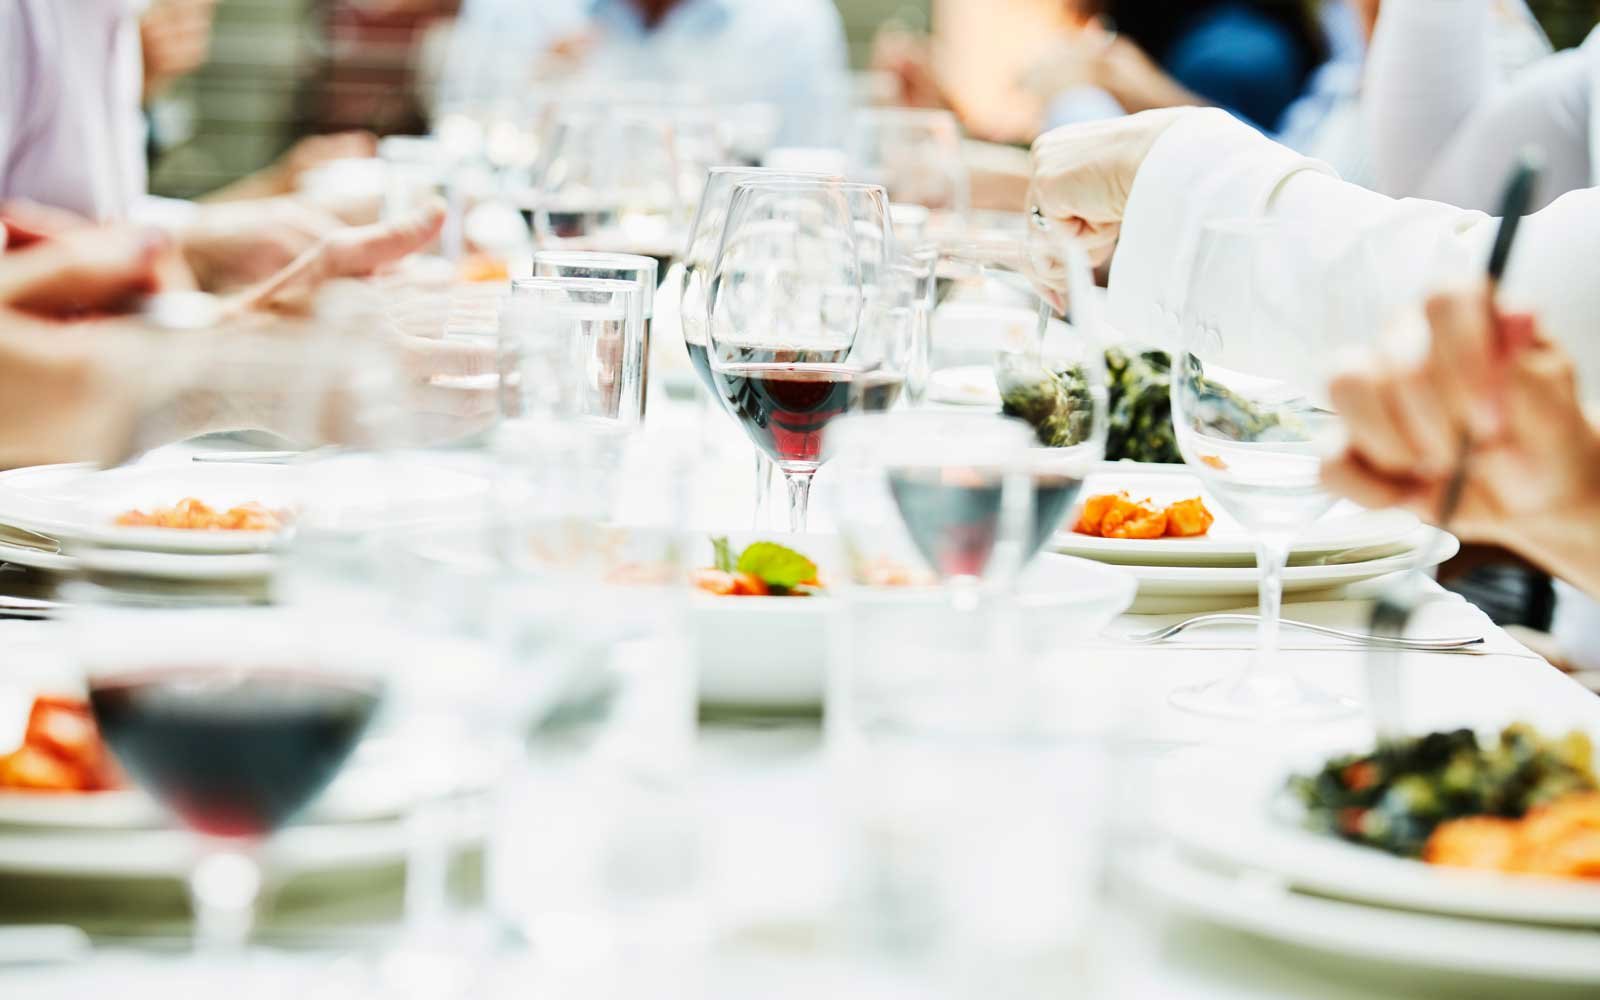 Now You Can Choose the Exact Table You Want When You Make a Restaurant Reservation on OpenTable